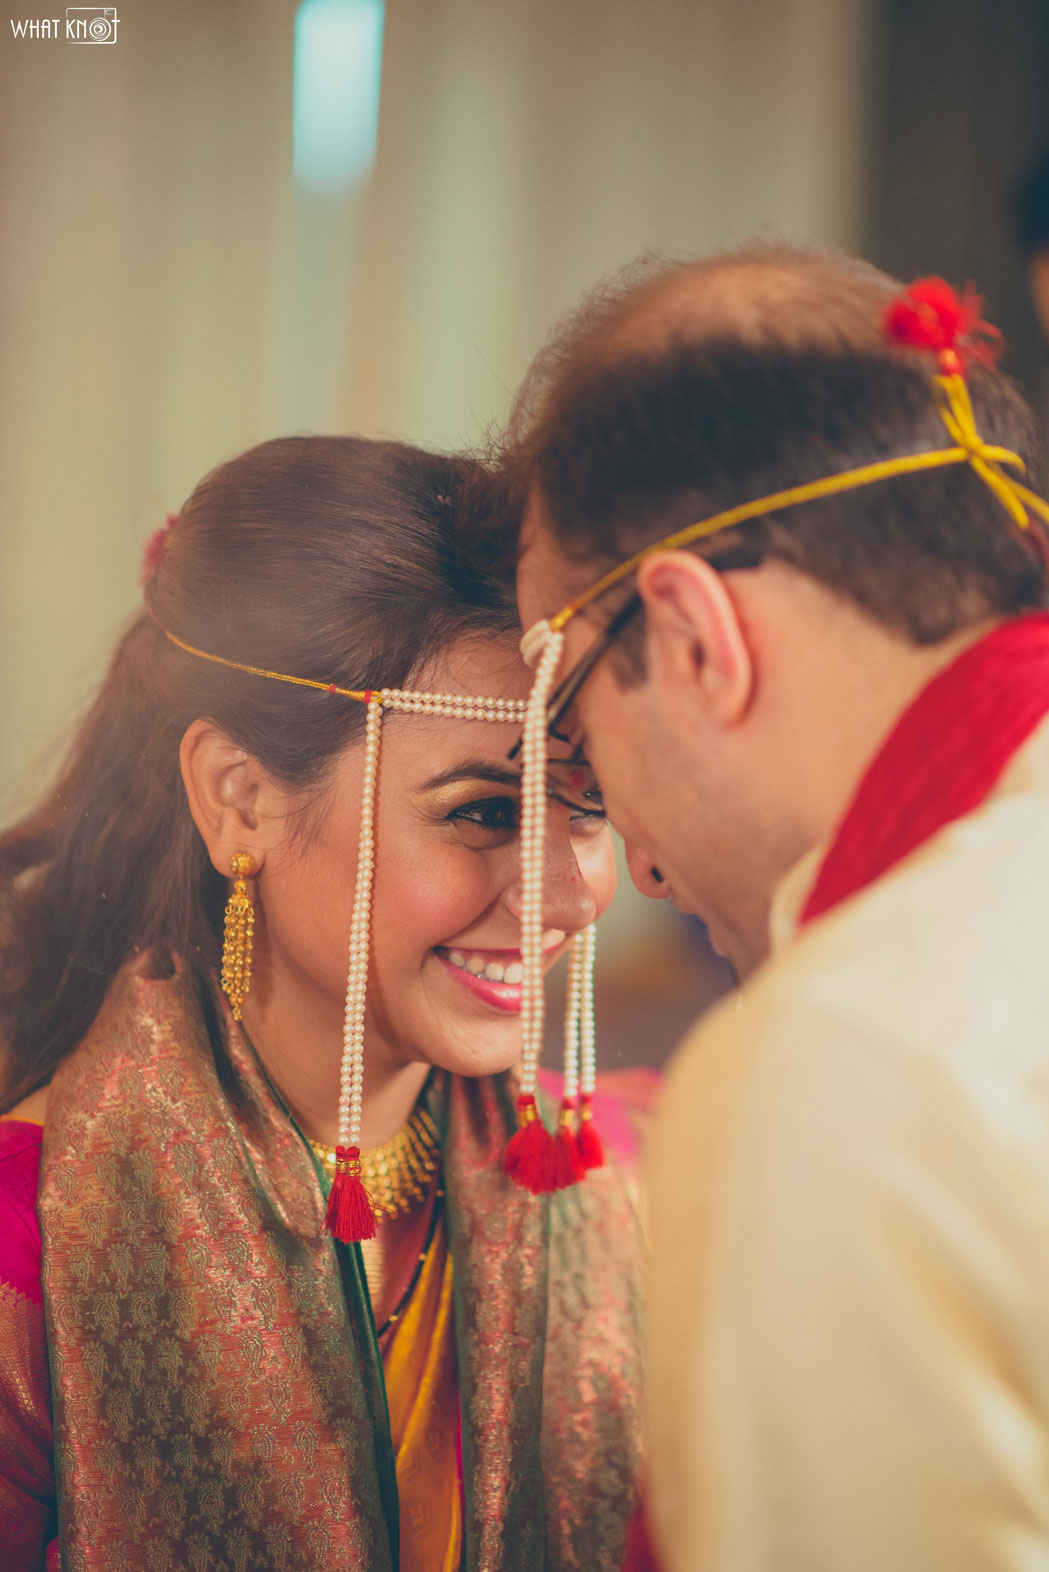 Candid-Wedding-Photography-WhatKnot-Marathi-132